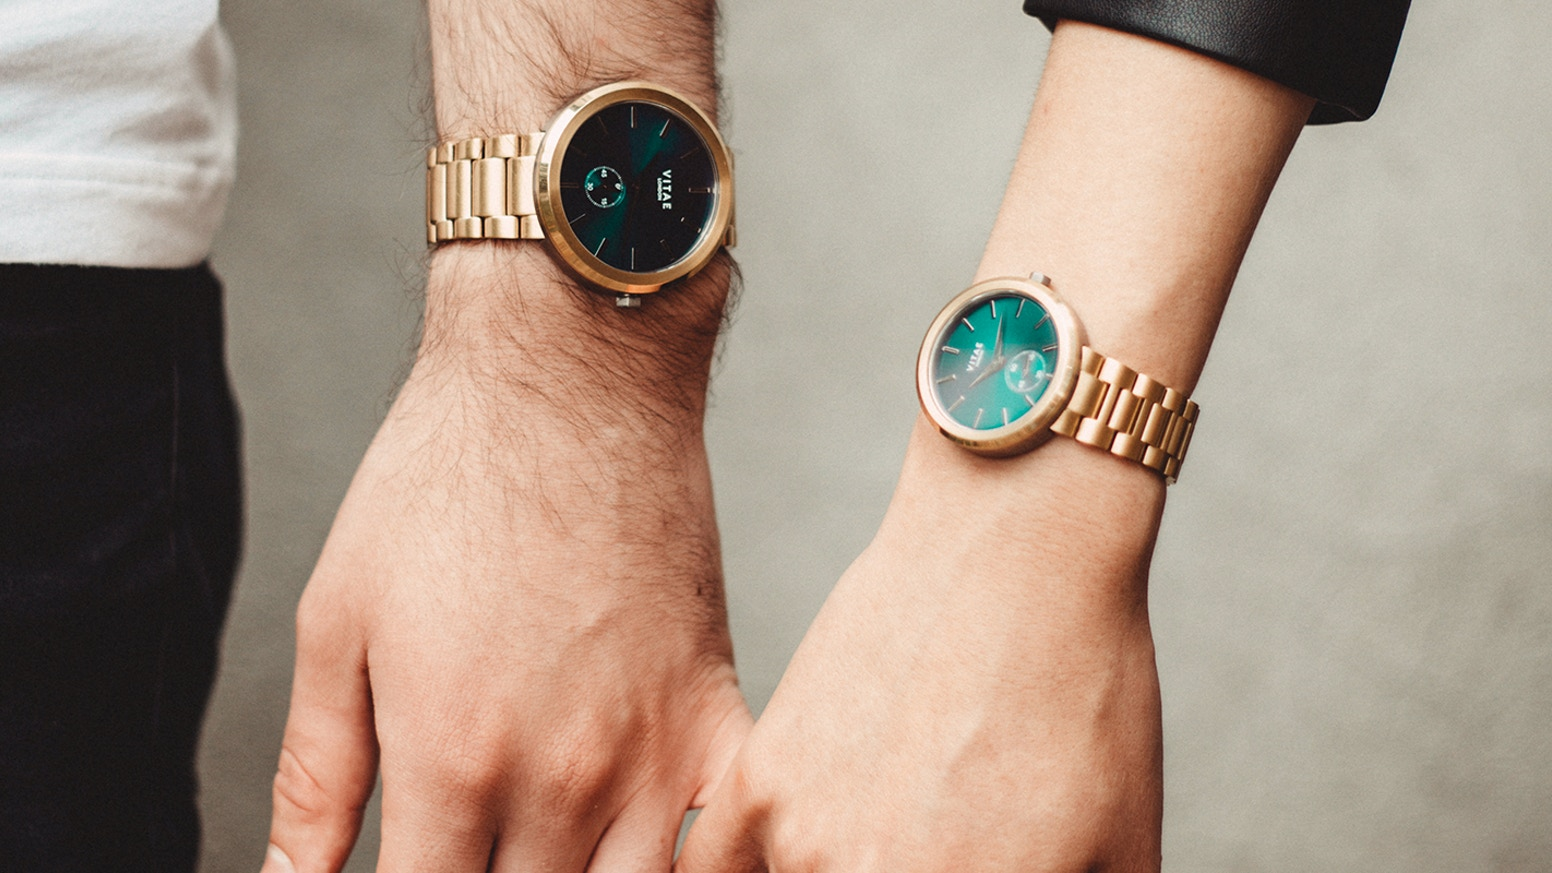 The innovative Watch brand impacting lives across Sub-Saharan Africa.